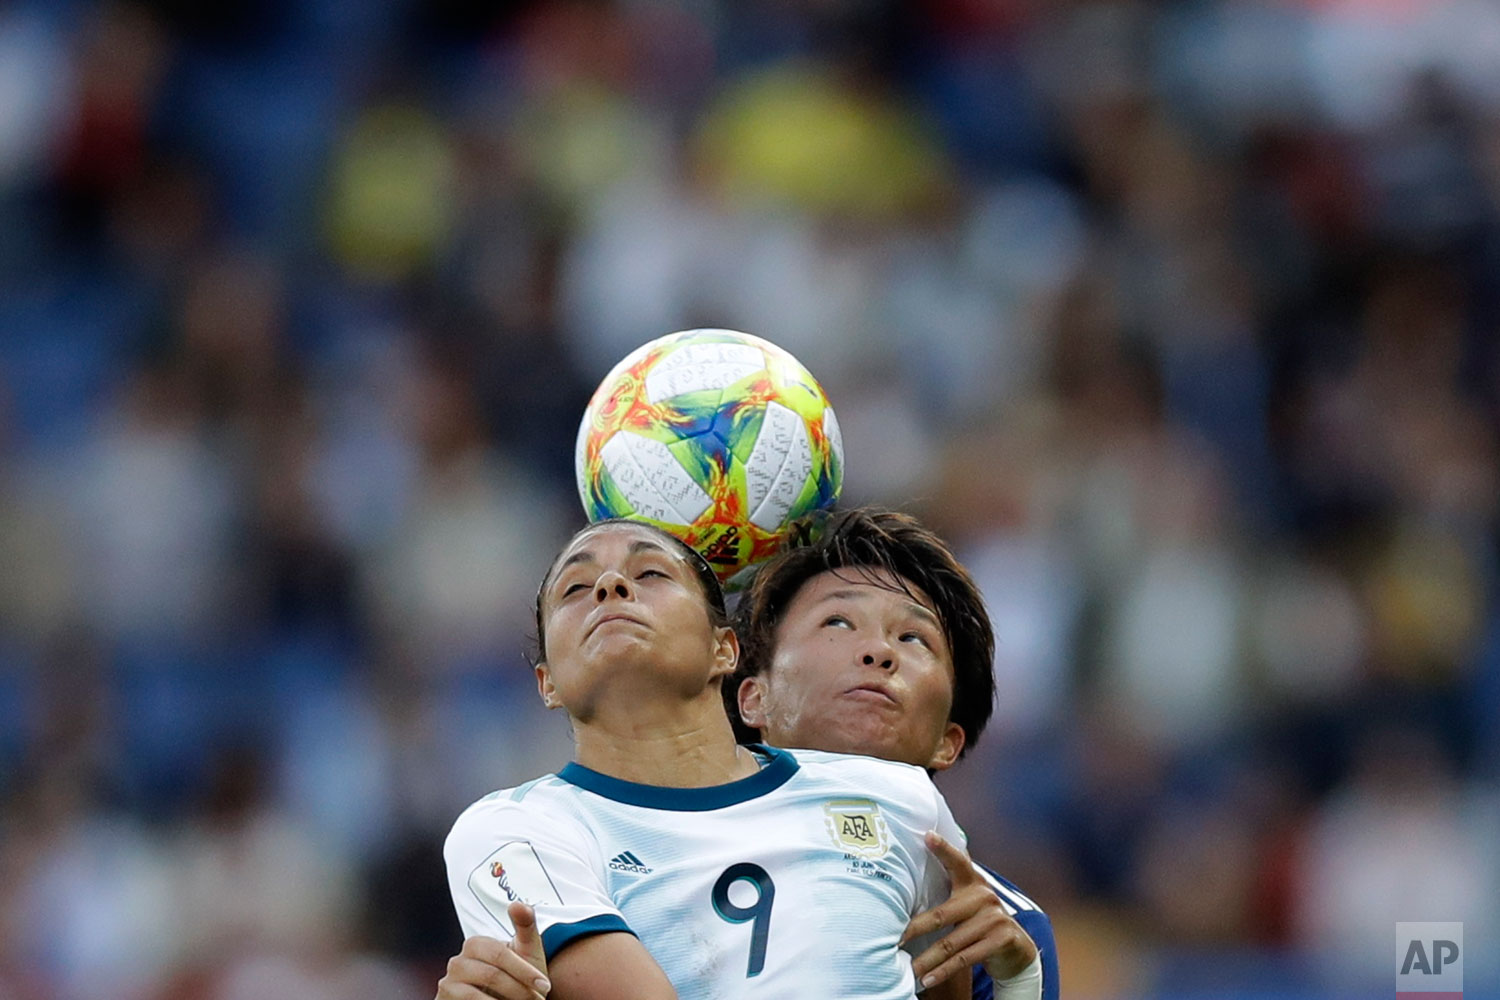 Argentina's Sole Jaimes, left, fights for a high ball with Japan's Moeka Minami during the Women's World Cup Group D soccer match between Argentina and Japan at the Parc des Princes in Paris, Monday, June 10, 2019. (AP Photo/Alessandra Tarantino)